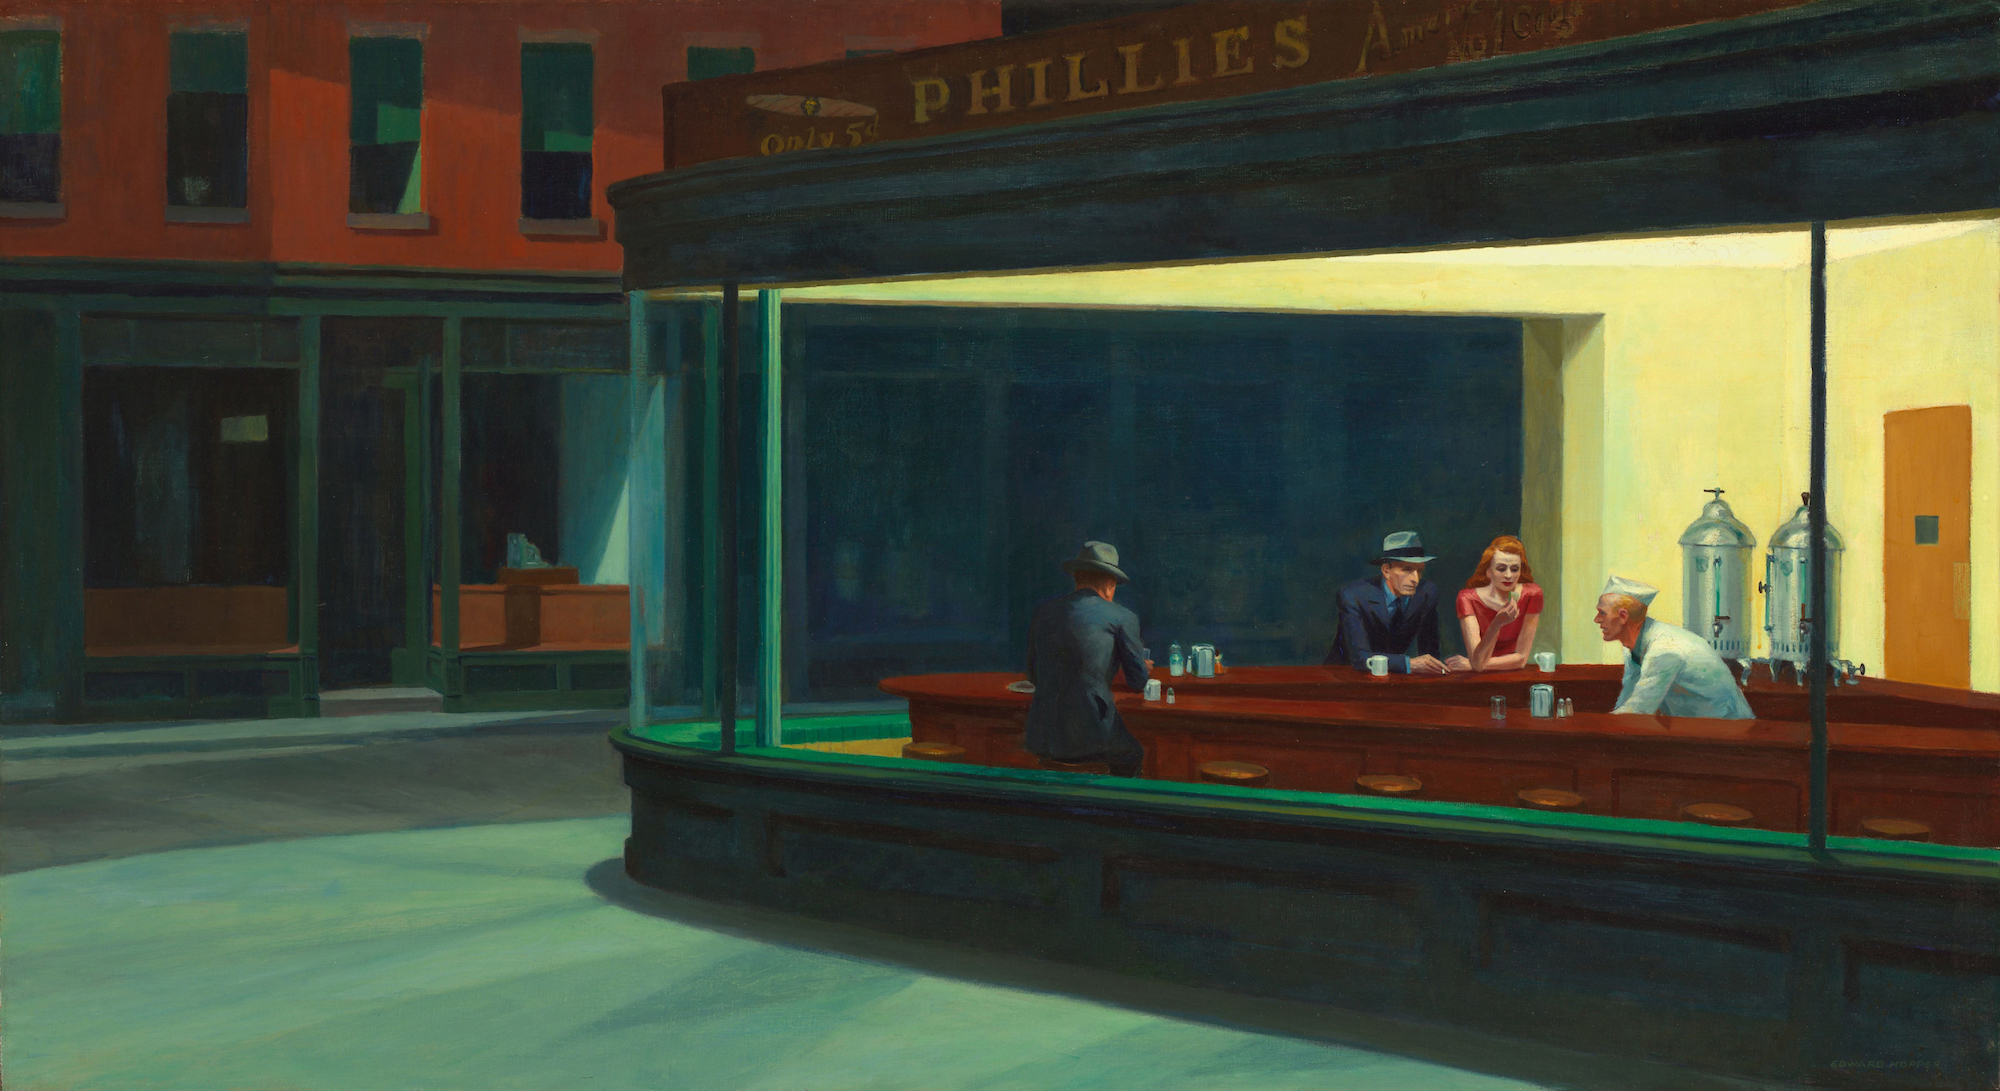 Edward Hopper, Nighthawks, 1942. Photo via Wikimedia Commons